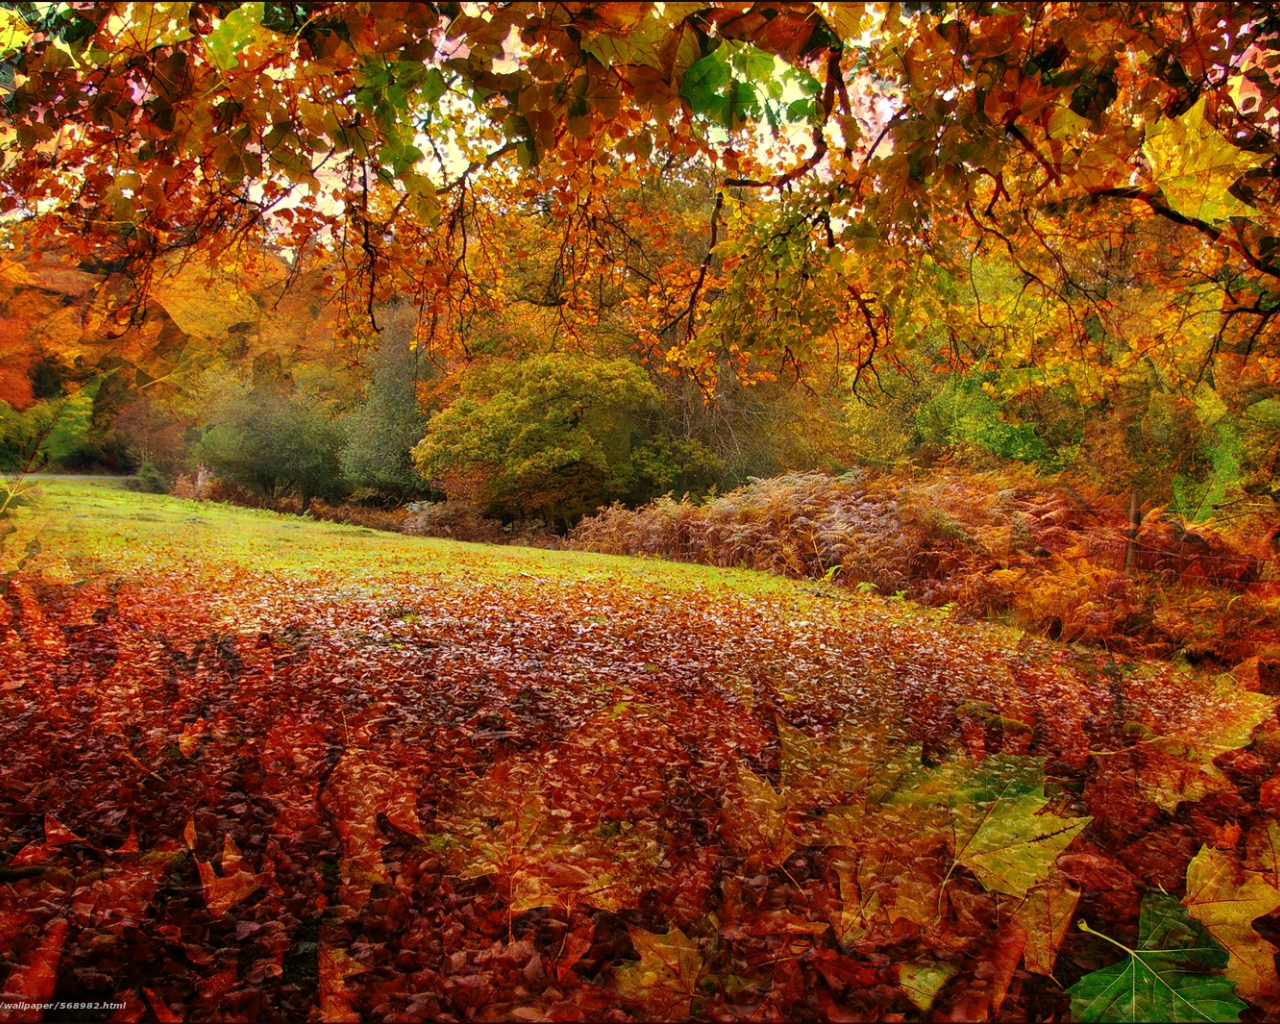 Free Download Wallpaper Autumn New Forest In Hampshire England Desktop 1600x1065 For Your Desktop Mobile Tablet Explore 41 New England Fall Desktop Wallpaper England Wallpaper For Desktop New England